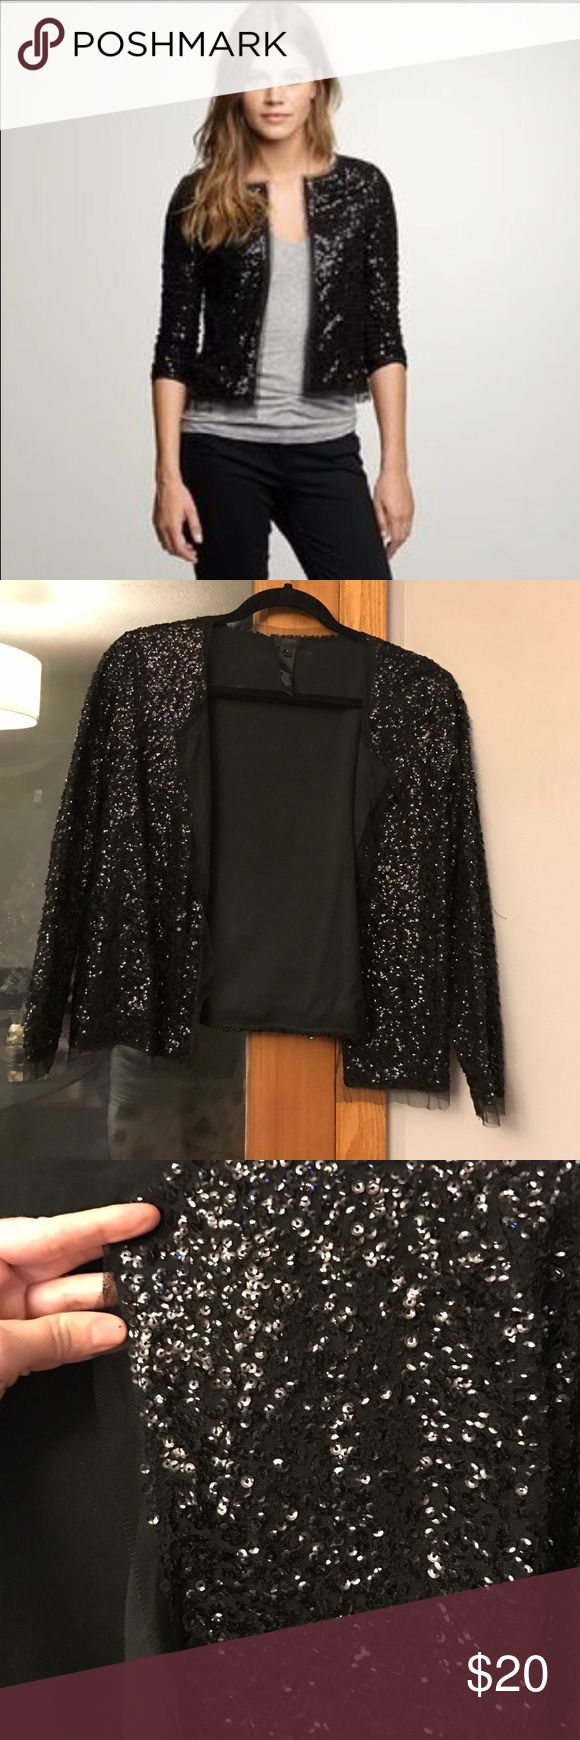 J Crew Sequin Cardigan Great condition!  NO TRADES J. Crew Sweaters Cardigans